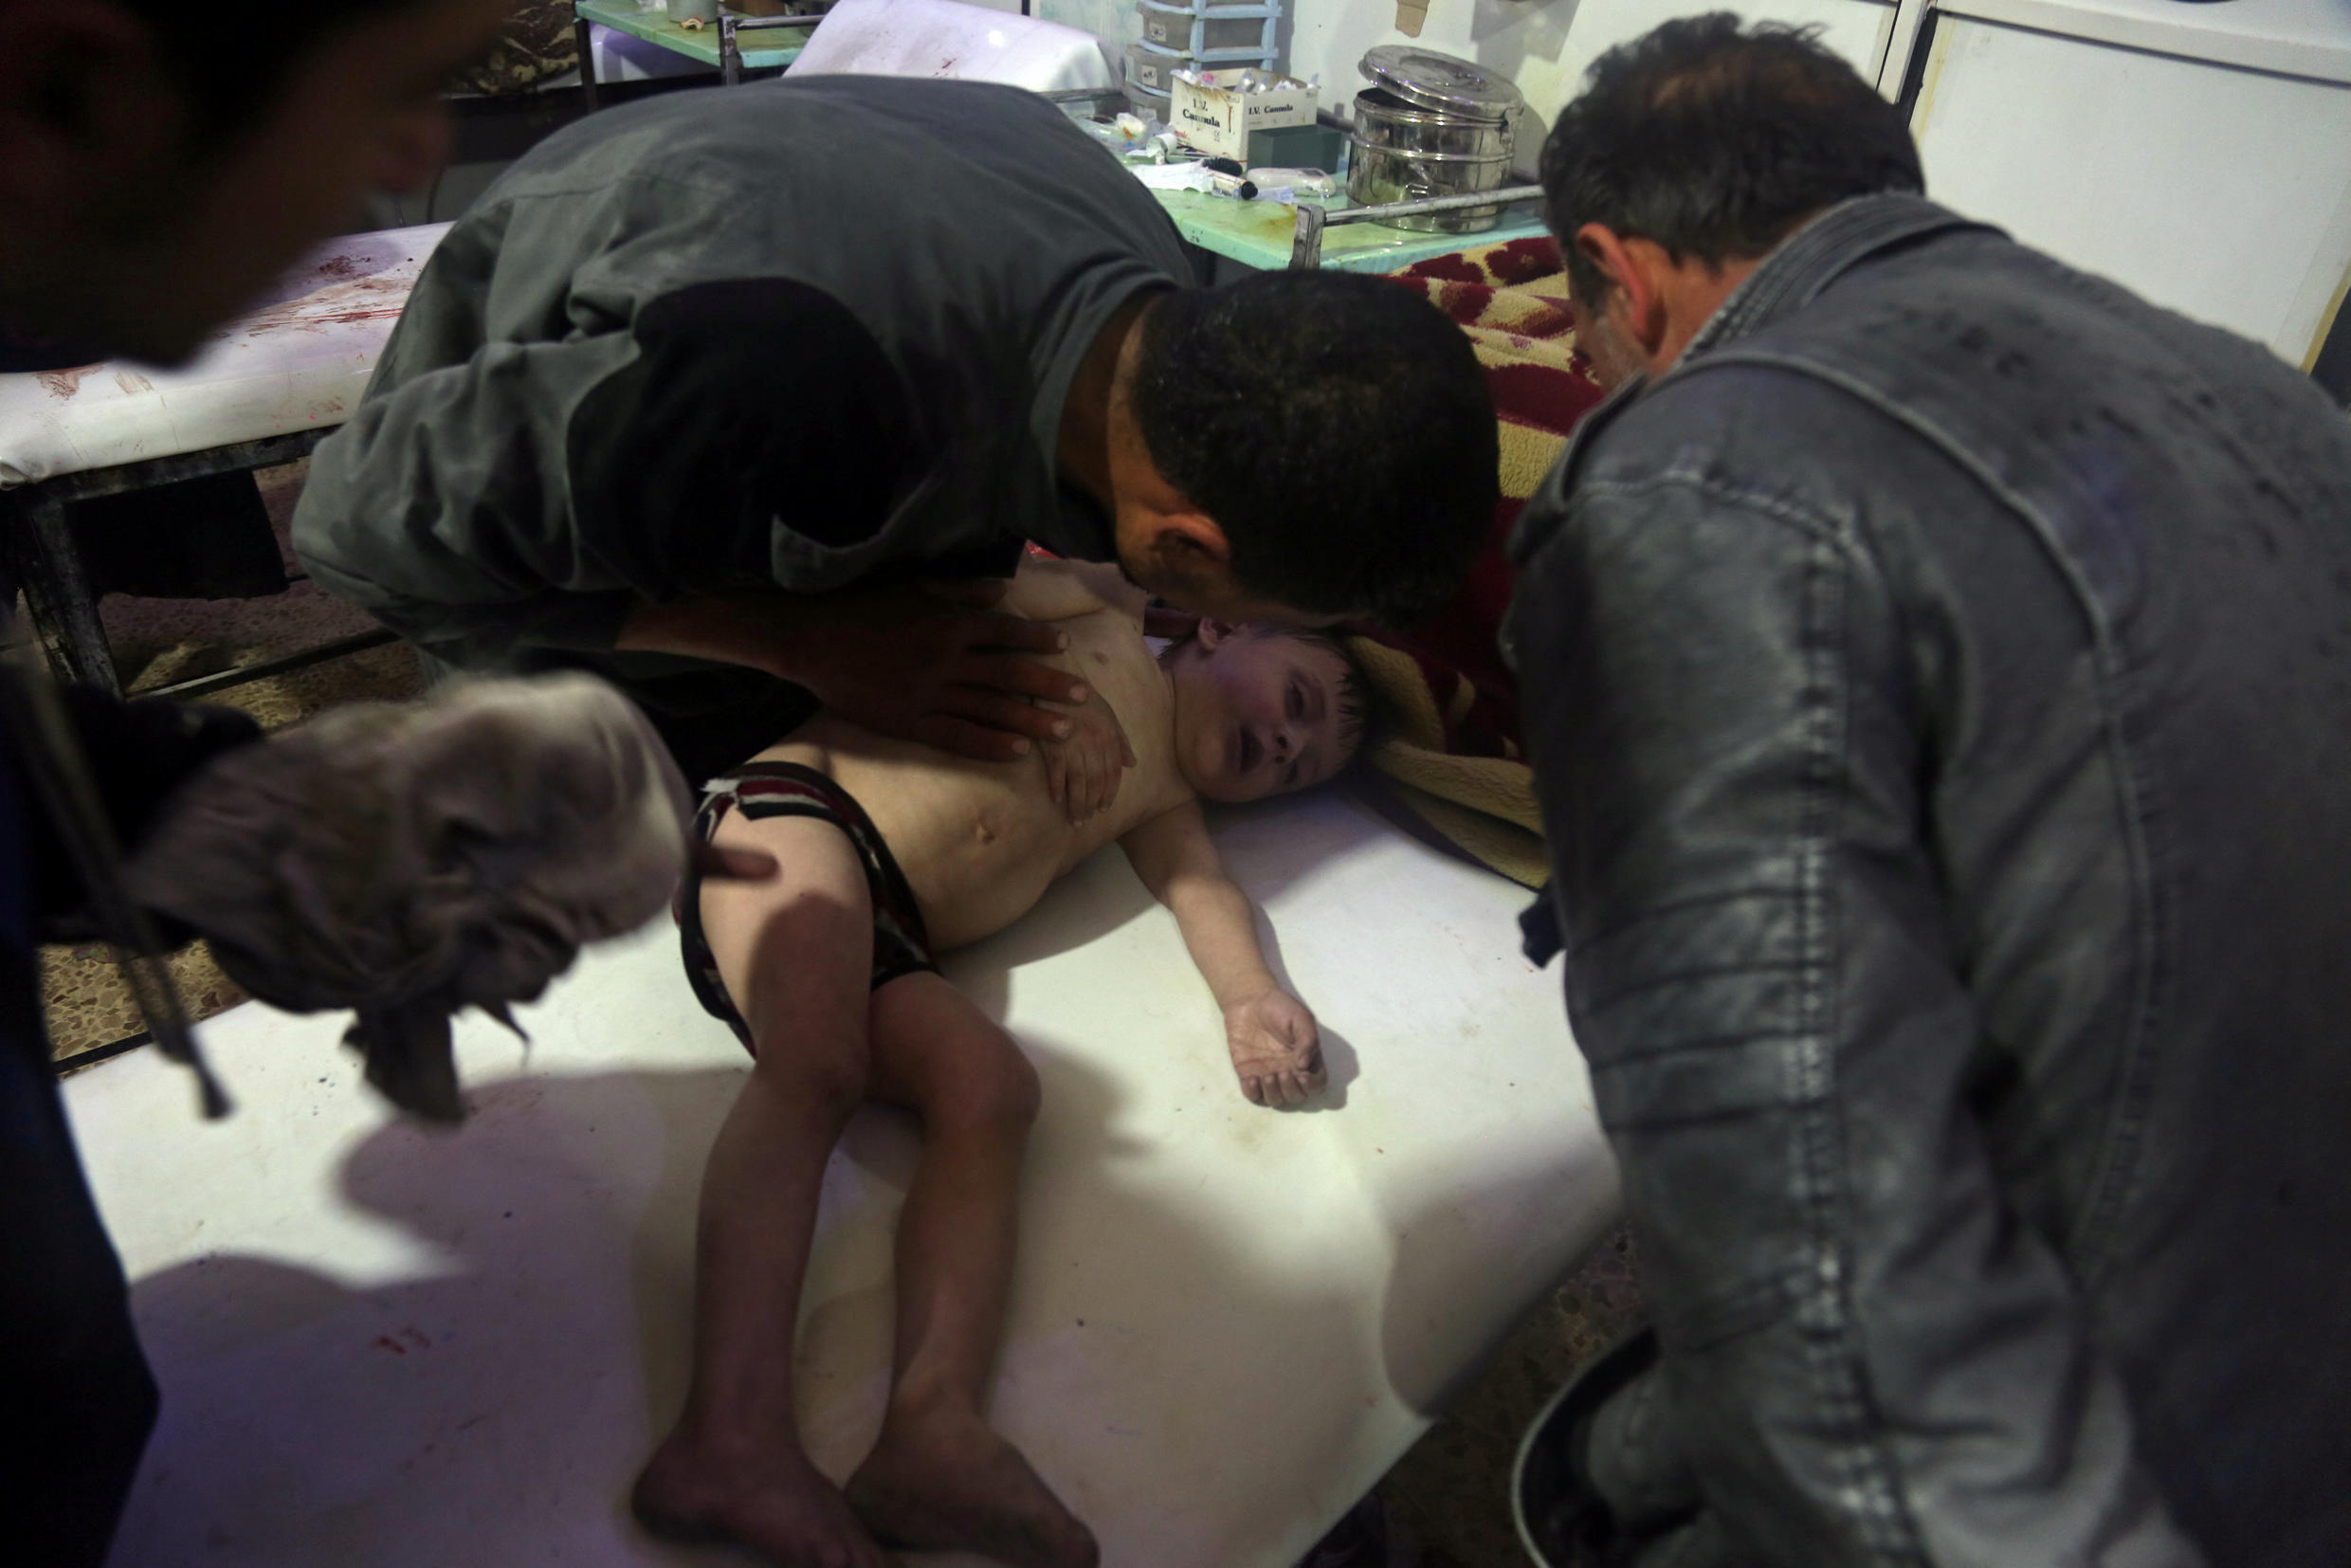 A child is treated in a hospital in Douma, eastern Ghouta in Syria, after what a Syria medical relief group claims was a suspected chemical attack April, 7, 2018.